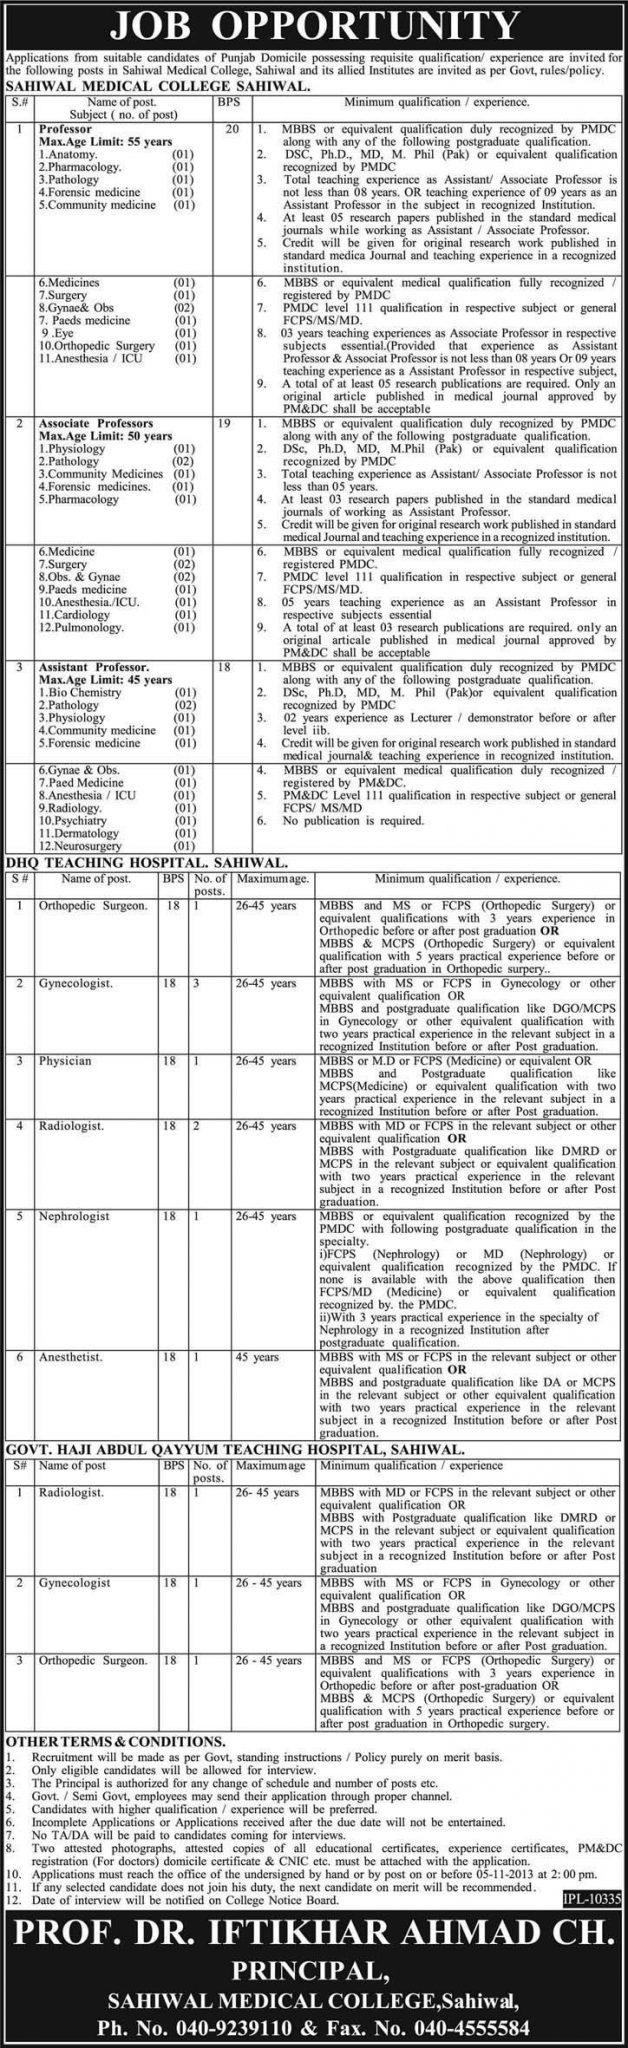 Professor, Physician & Gynecologist Jobs in Sahiwal Medical College